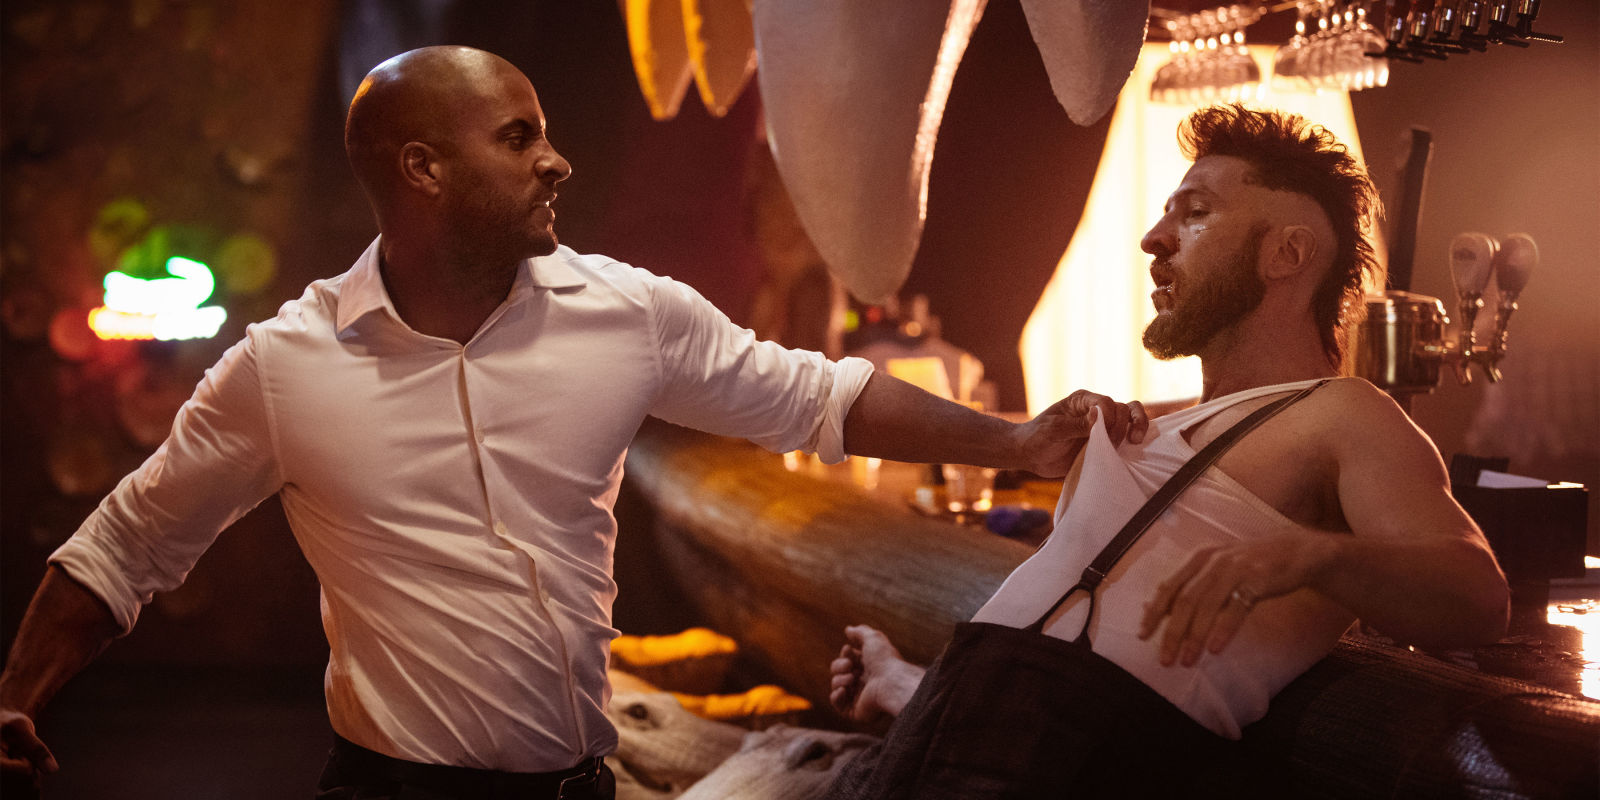 american gods American gods released from prison, shadow finds his world turned upside down his wife has been killed a mysterious stranger offers him a job.